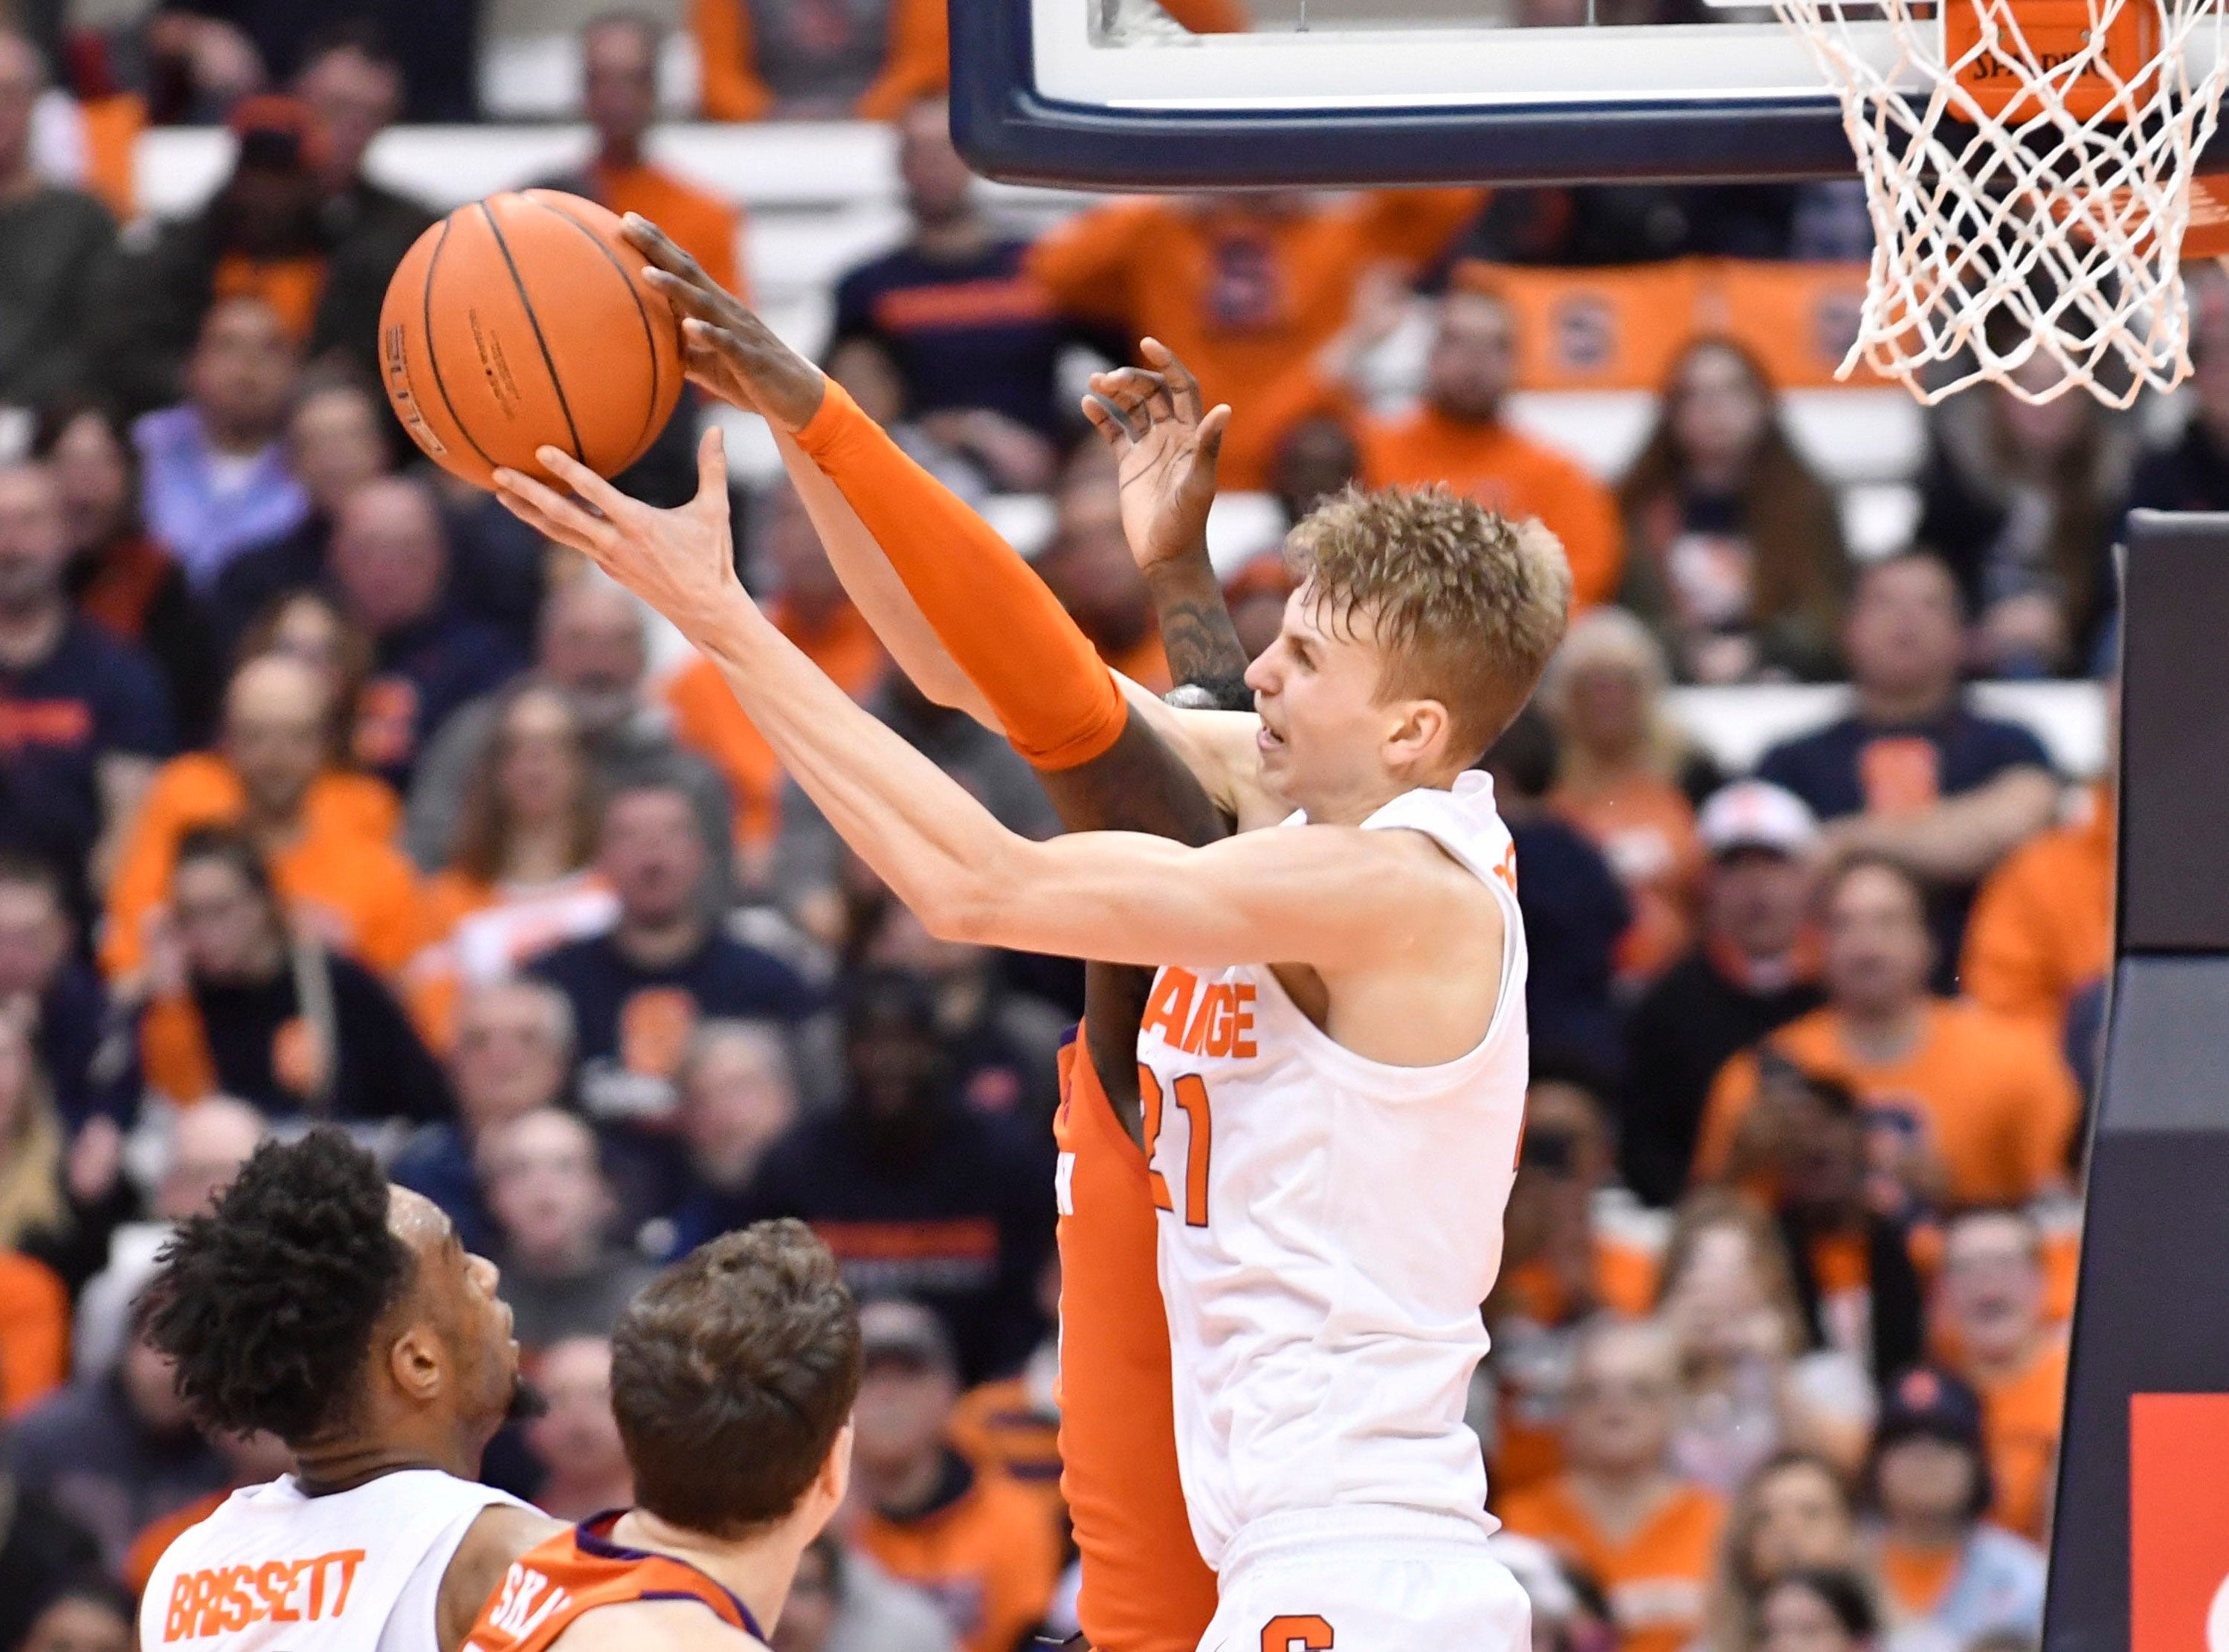 Jan 9, 2019; Syracuse, NY, USA; Syracuse Orange forward Marek Dolezaj (21) battles for a rebound during the first half against the Clemson Tigers at the Carrier Dome.